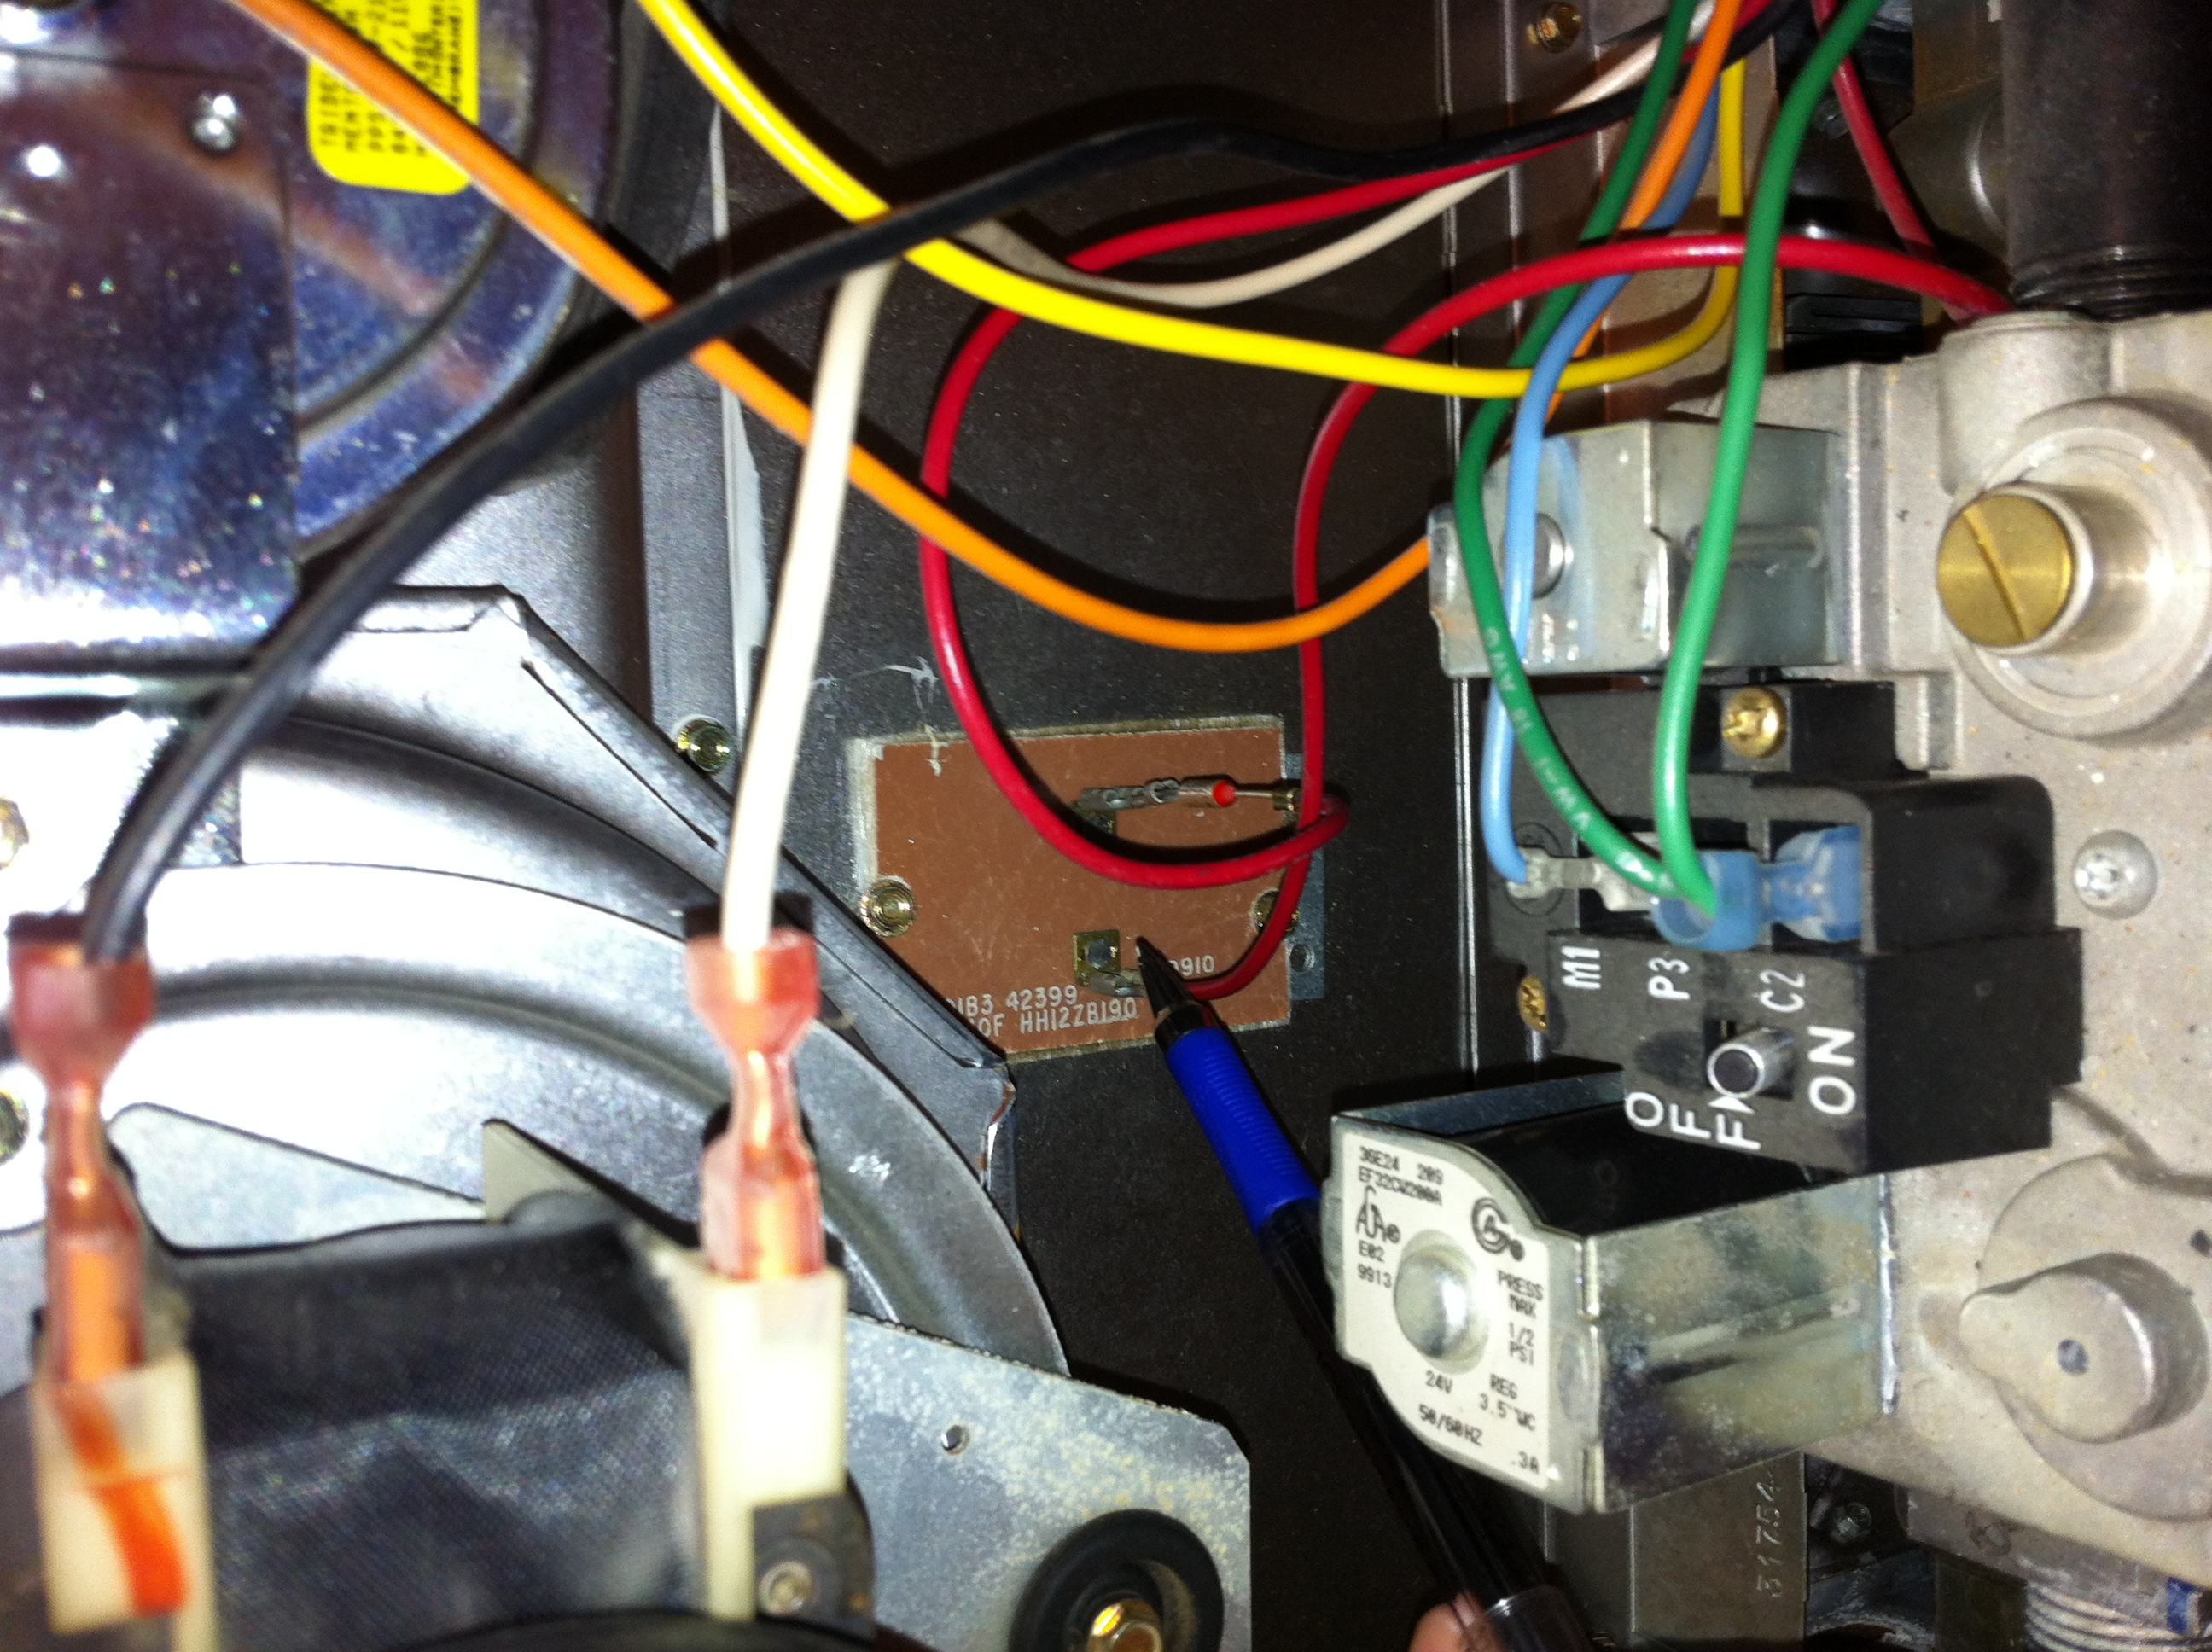 how do I reset my limit rollout switch on my Carrier Heate